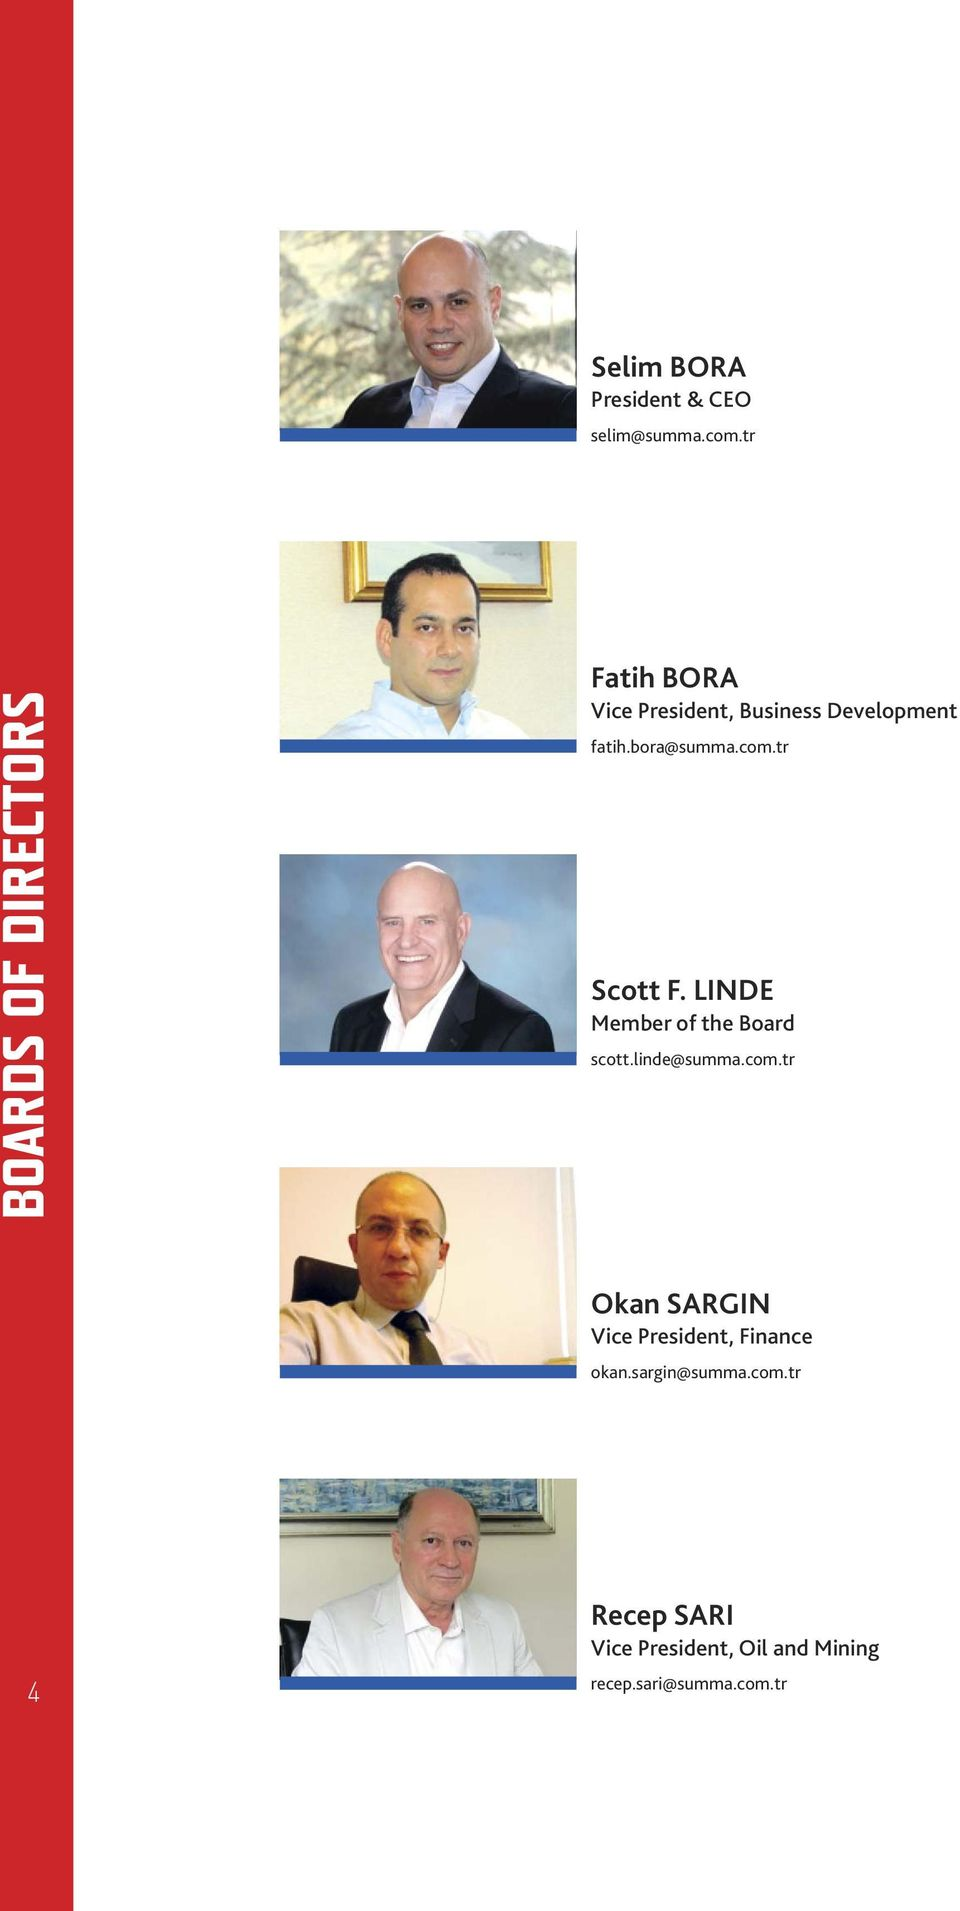 bora@summa.com.tr Scott F. LINDE Member of the Board scott.linde@summa.com.tr Okan SARGIN Vice President, Finance okan.